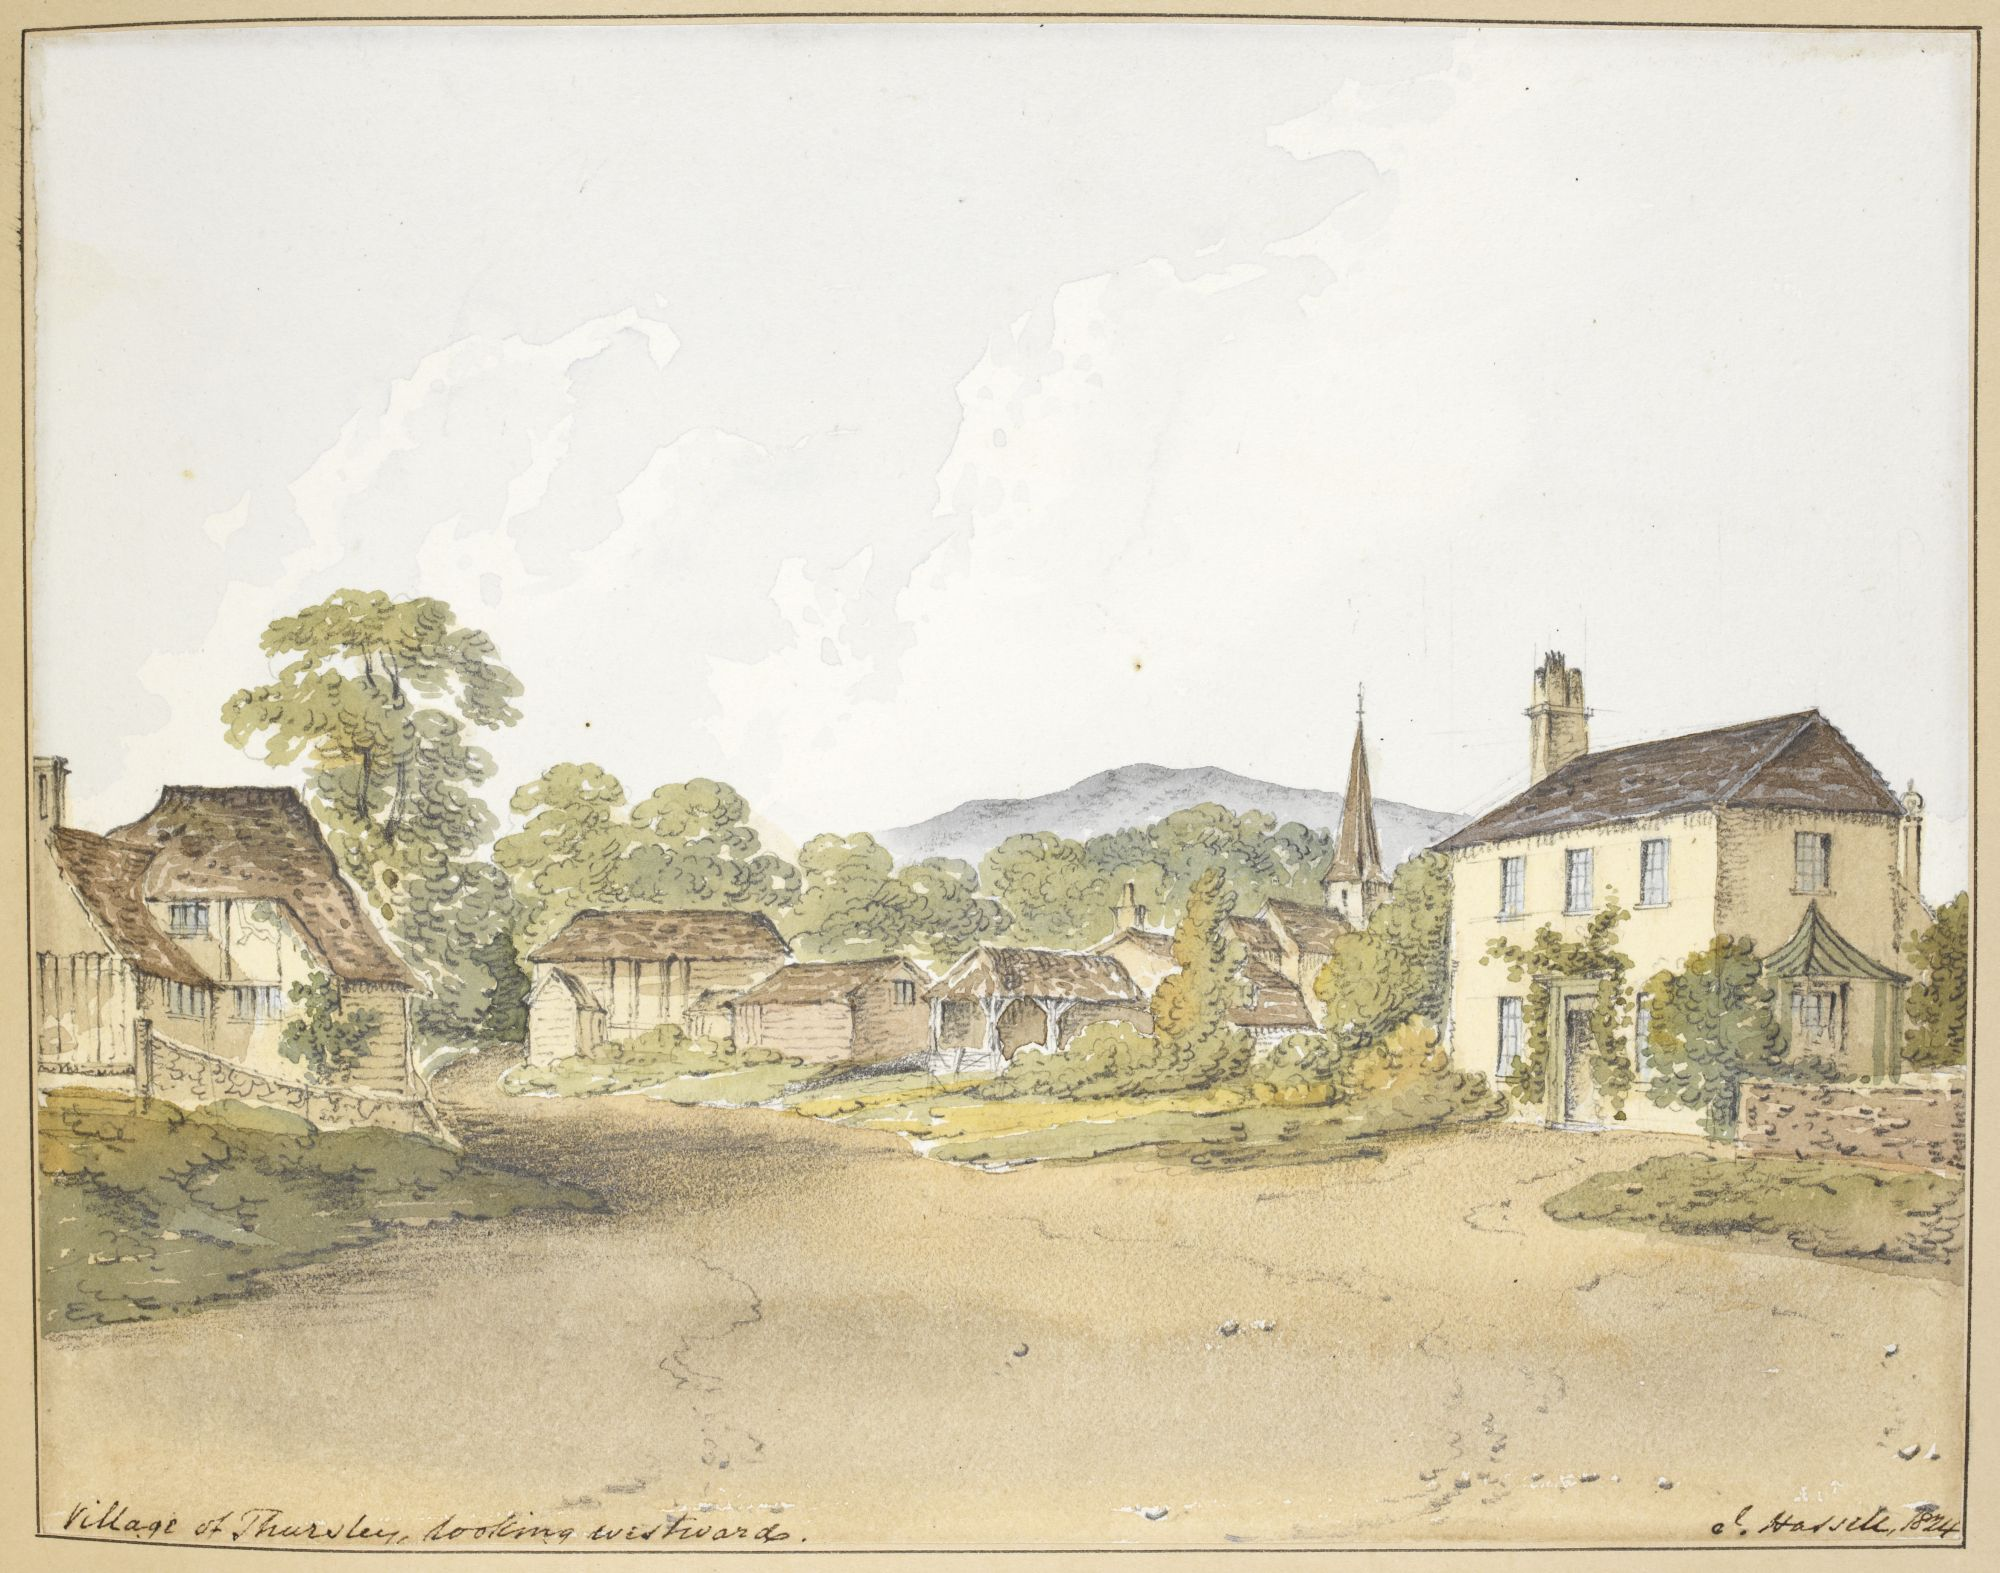 A view of the village of Thursley by John Hassell.